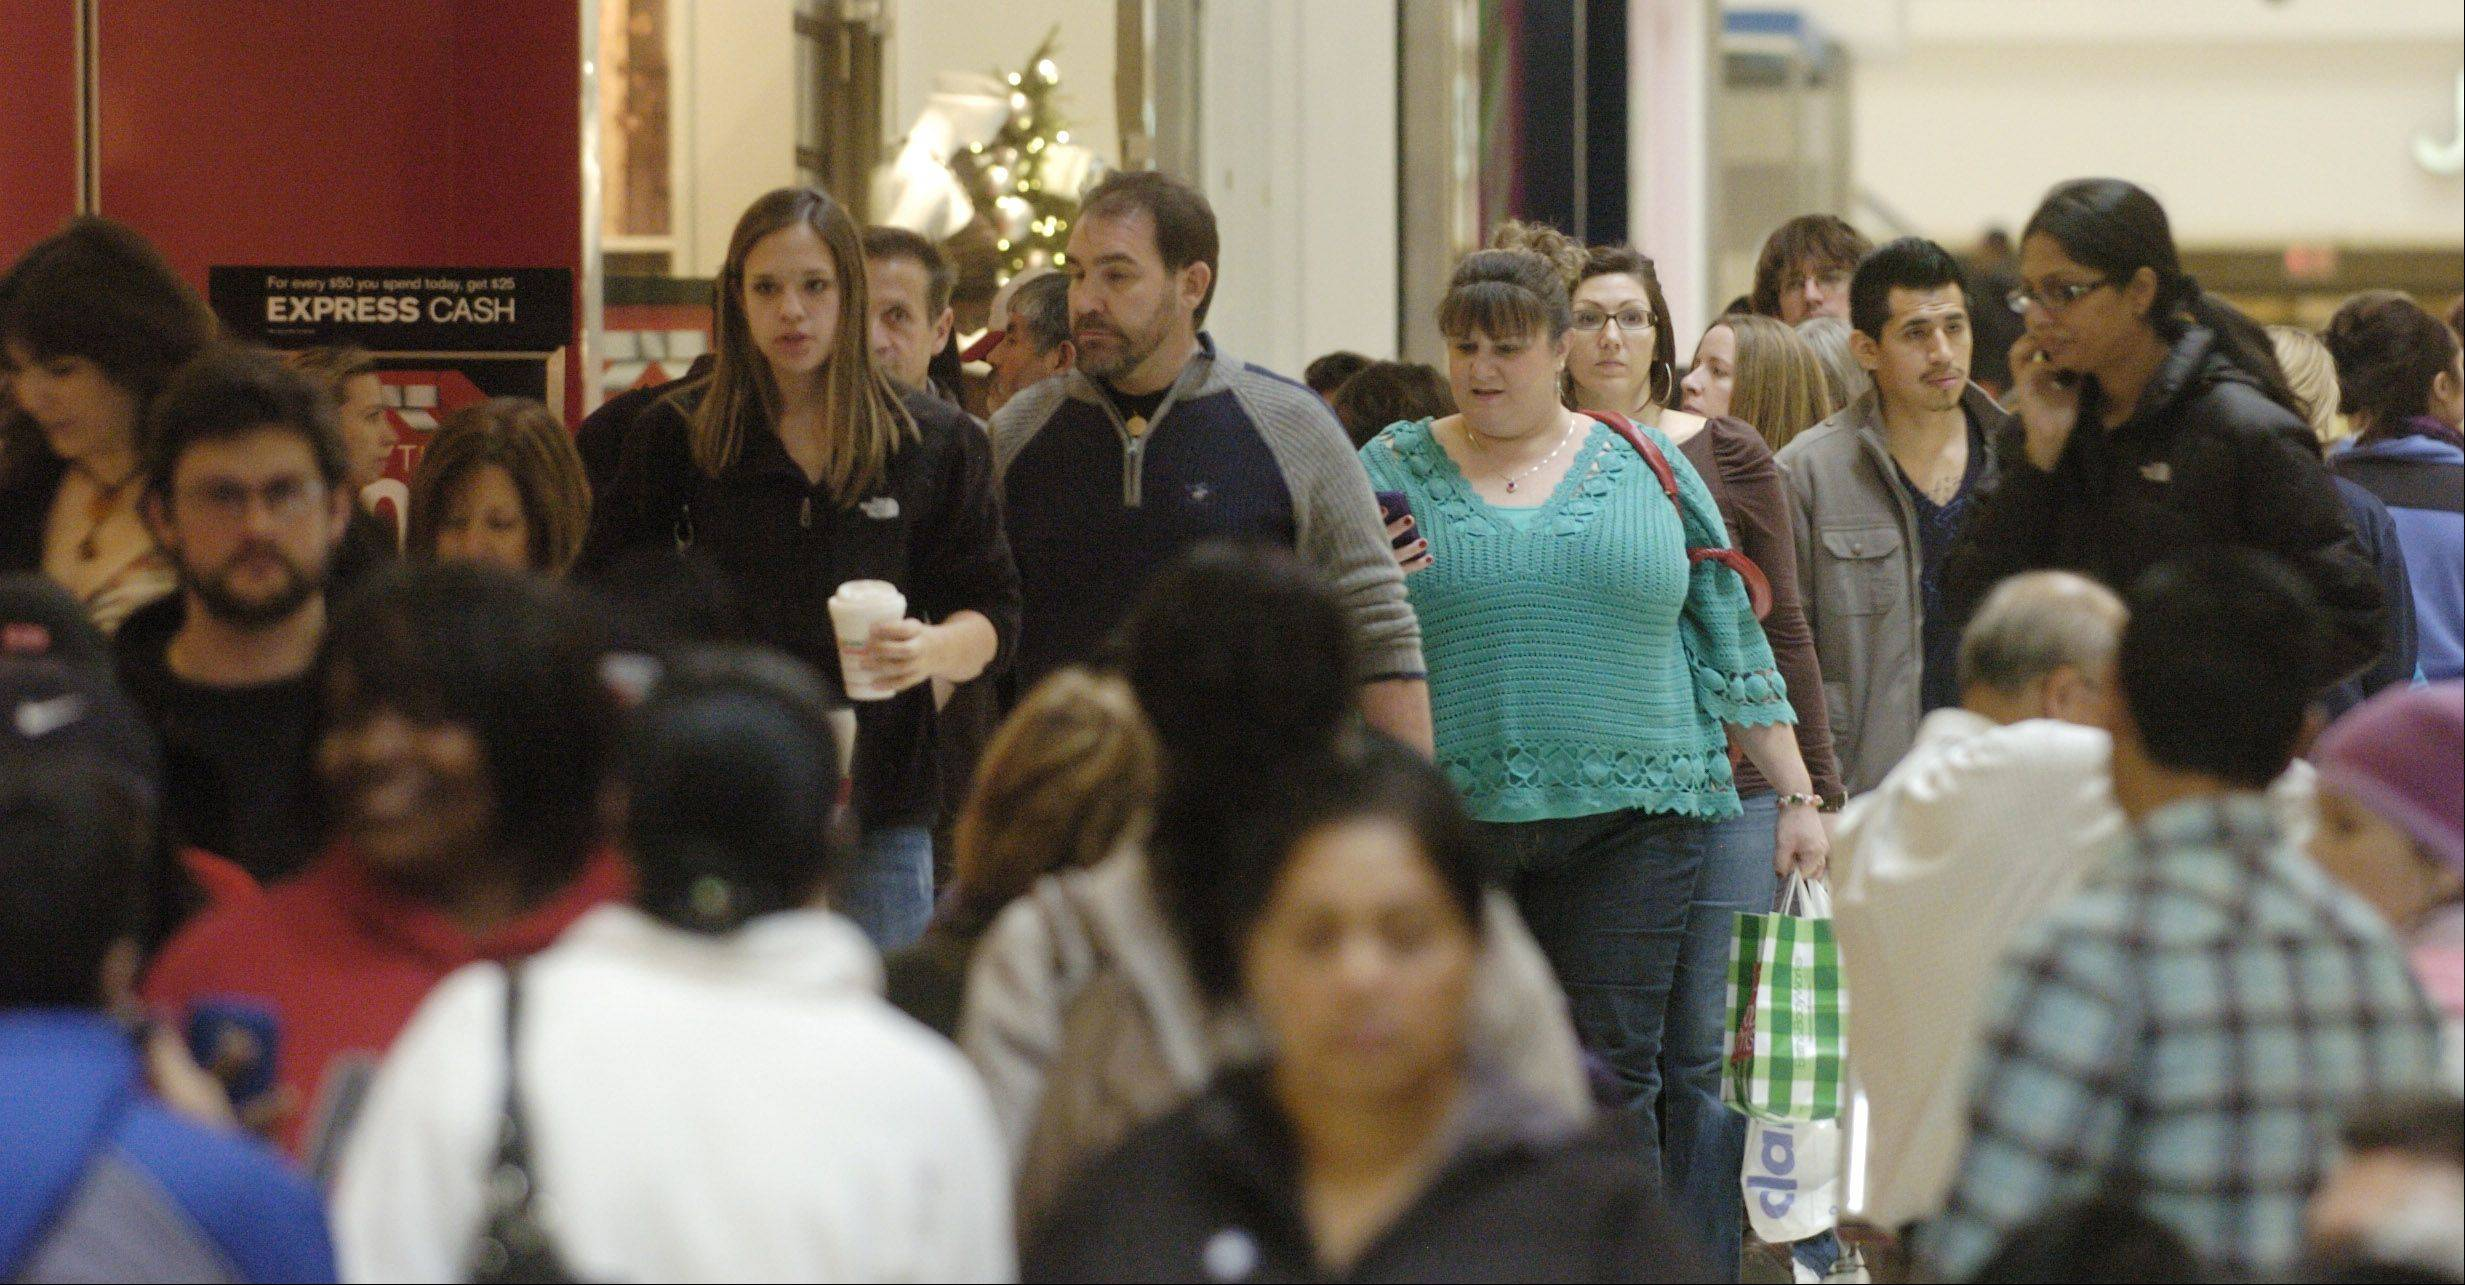 Shoppers look for bargains Woodfield Mall in Schaumburg on Black Friday.